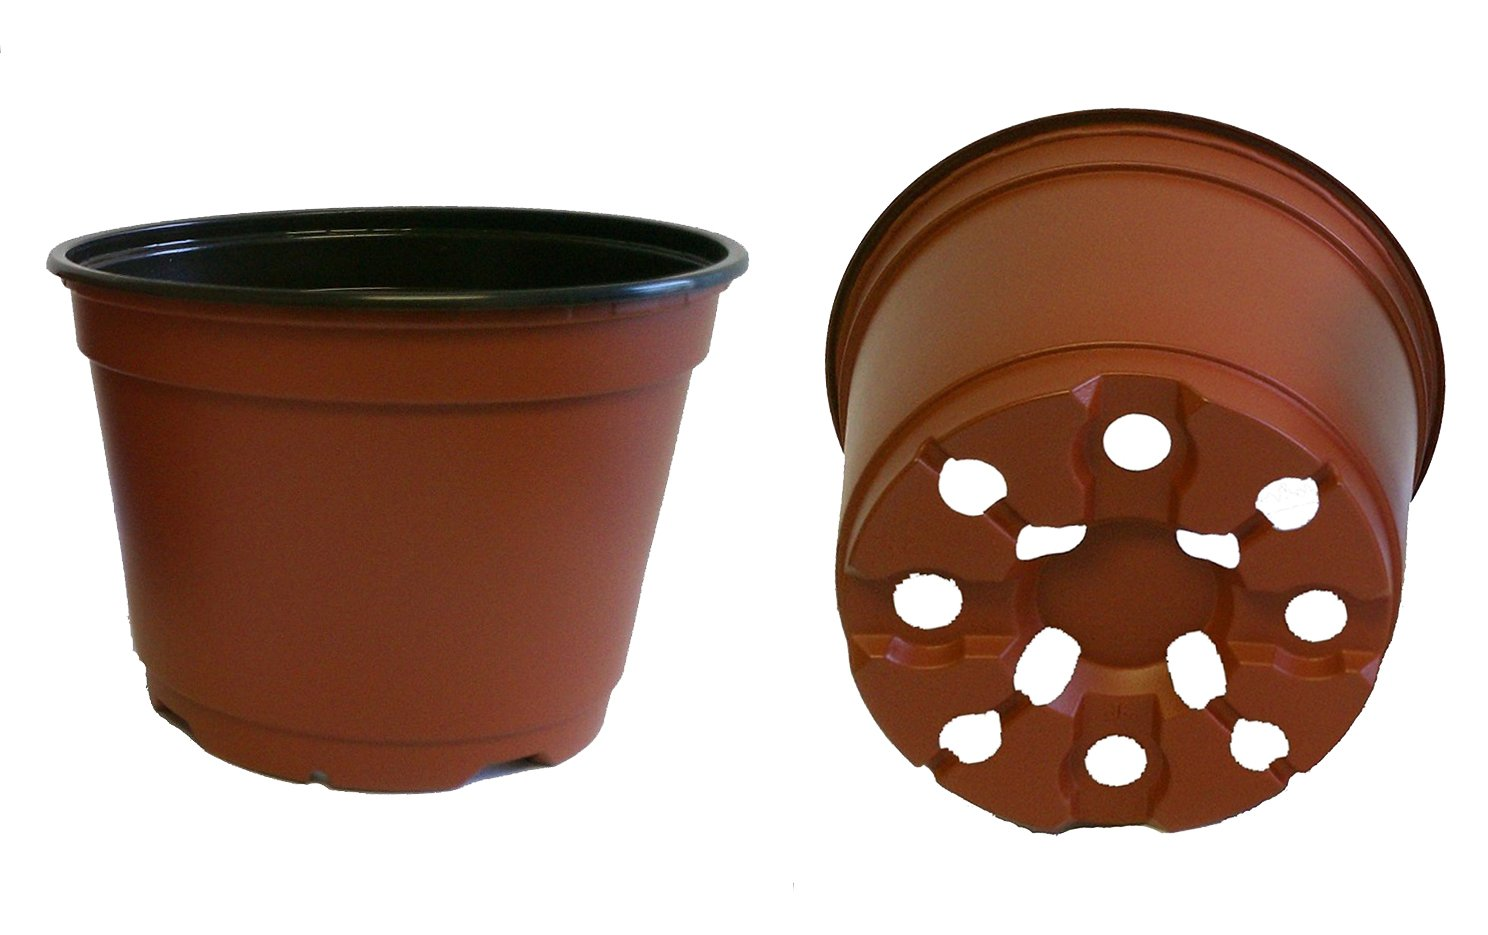 10 NEW 6 Inch TEKU Plastic Nursery Pots - Azalea Style ~ Pots ARE 6 Inch Round At the Top and 4.25 Inch Deep. Color : Terracotta by Teku